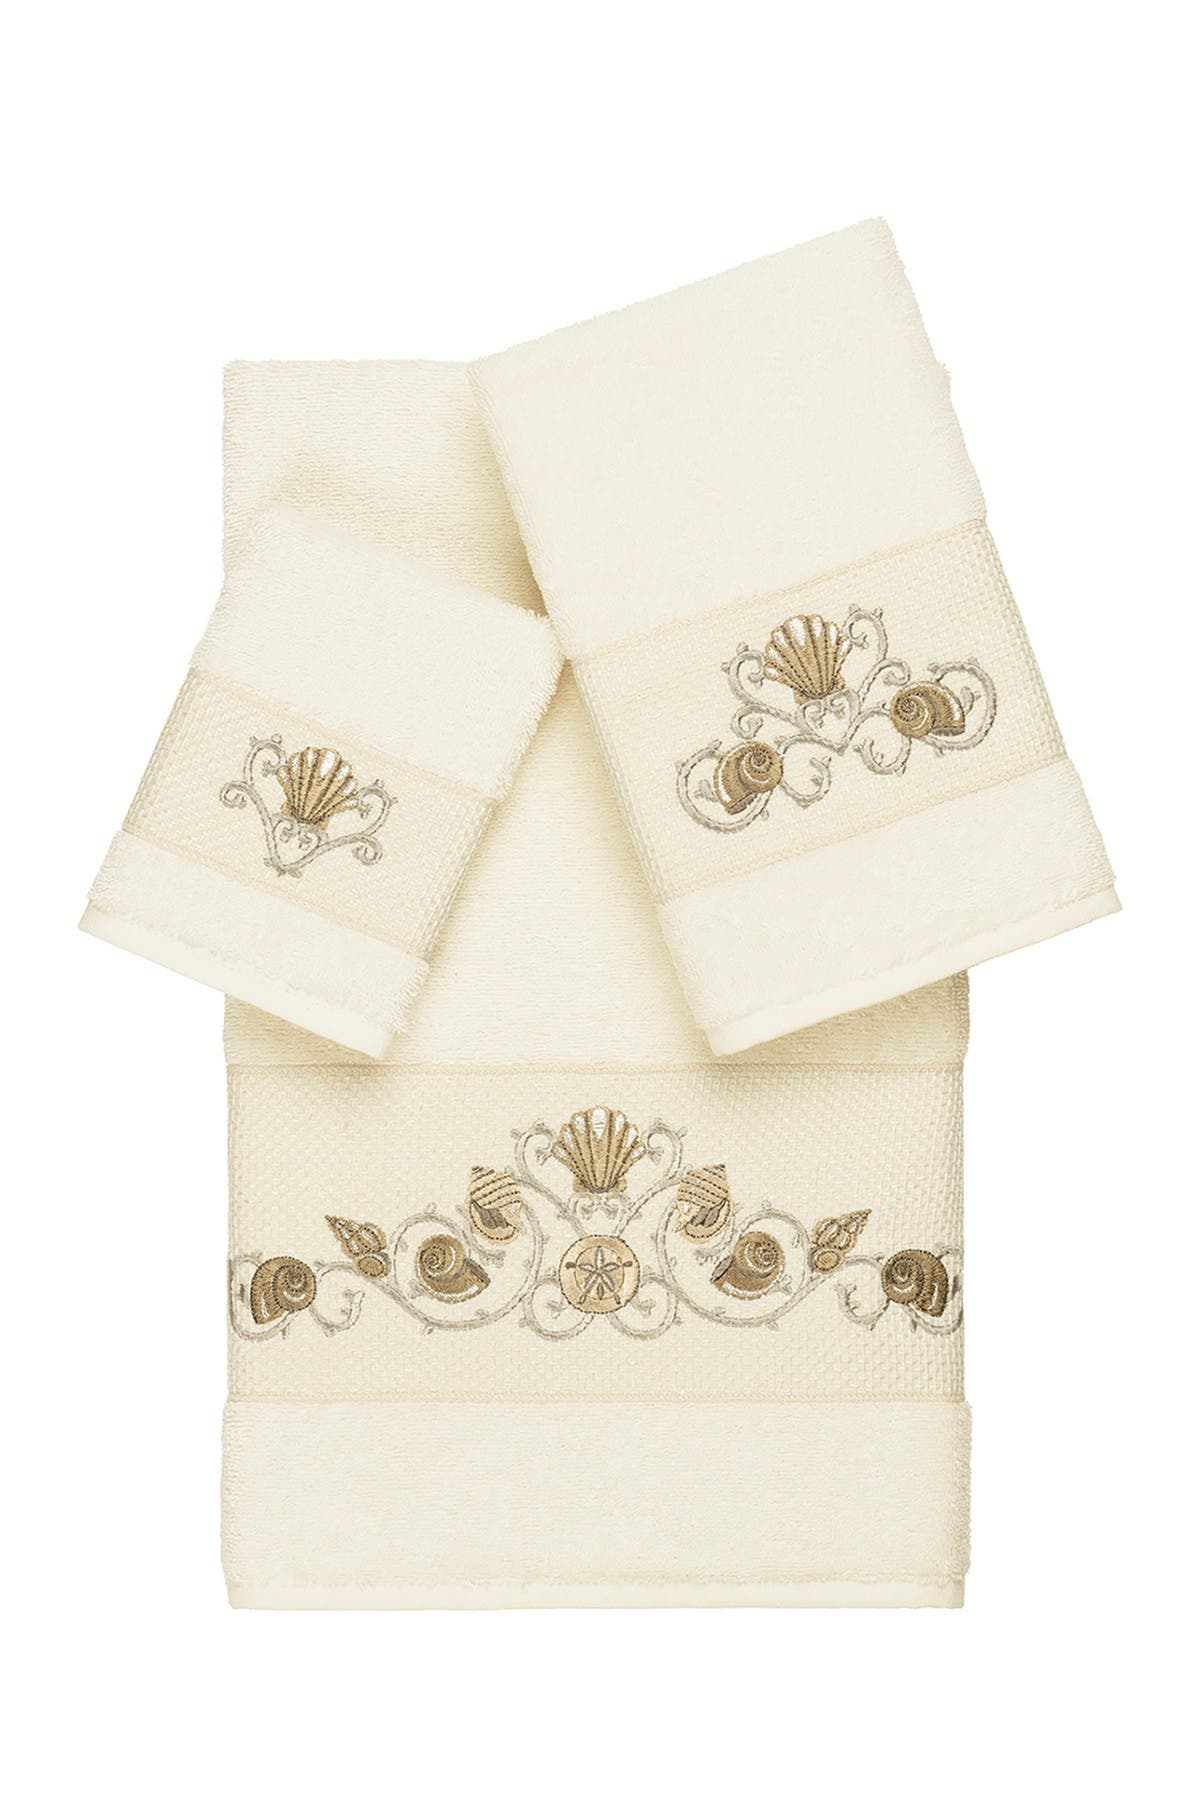 Image of LINUM HOME Bella 3-Piece Embellished Towel Set - Cream